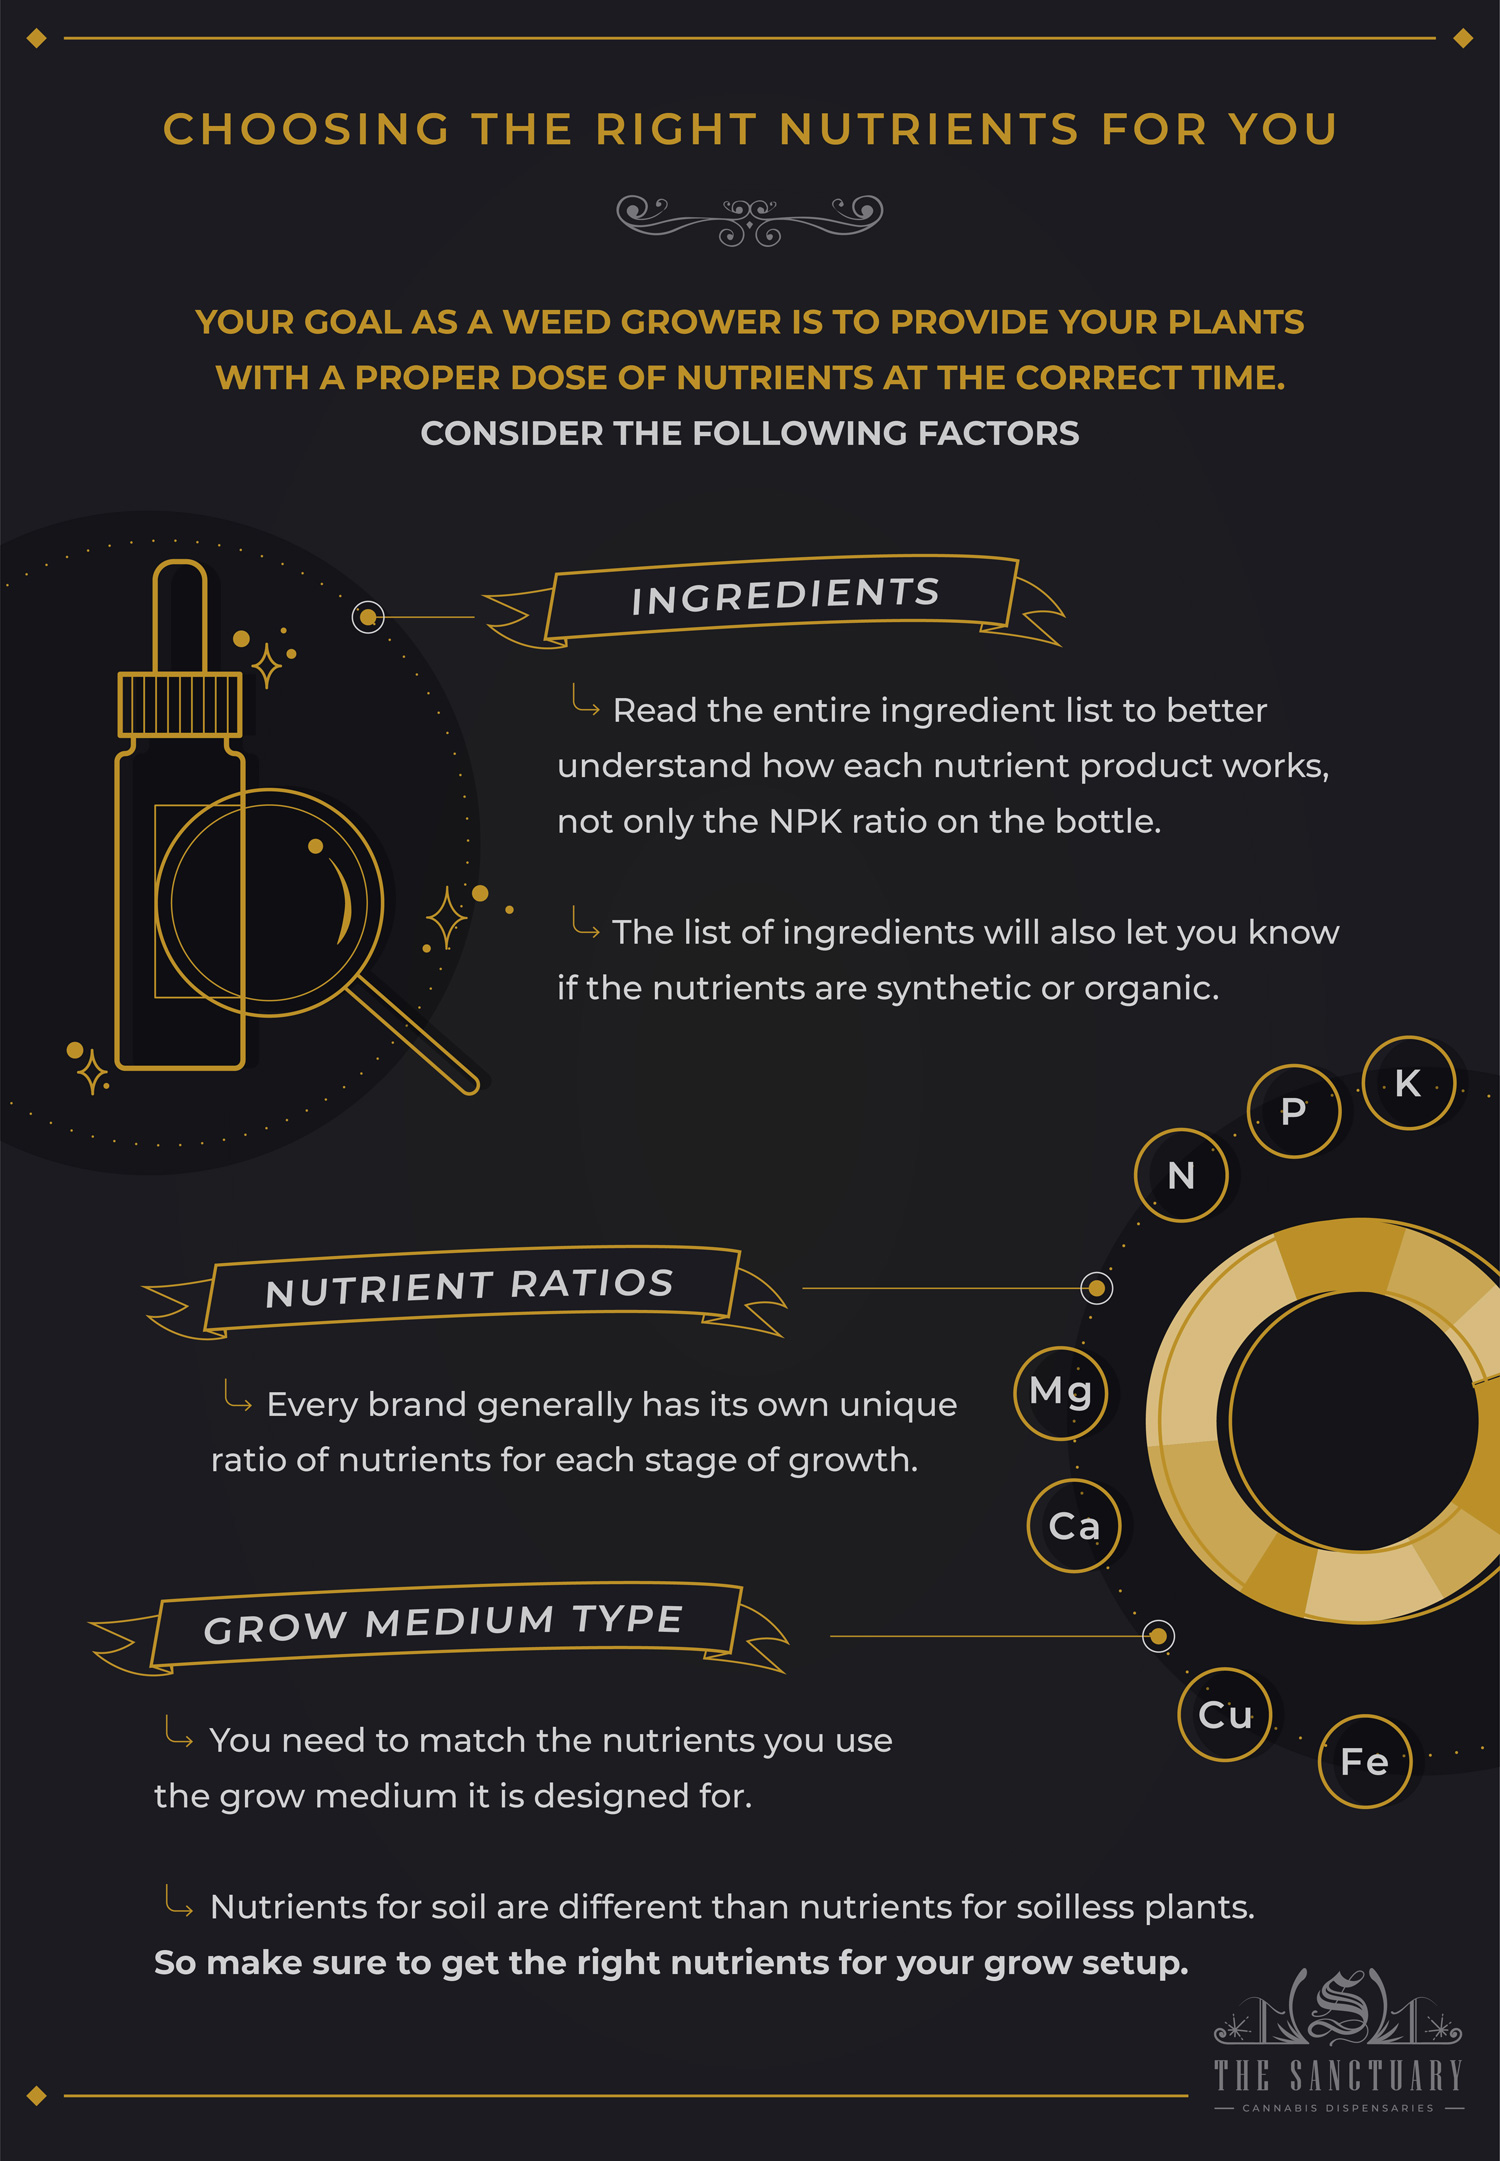 Choosing the right nutrients for you